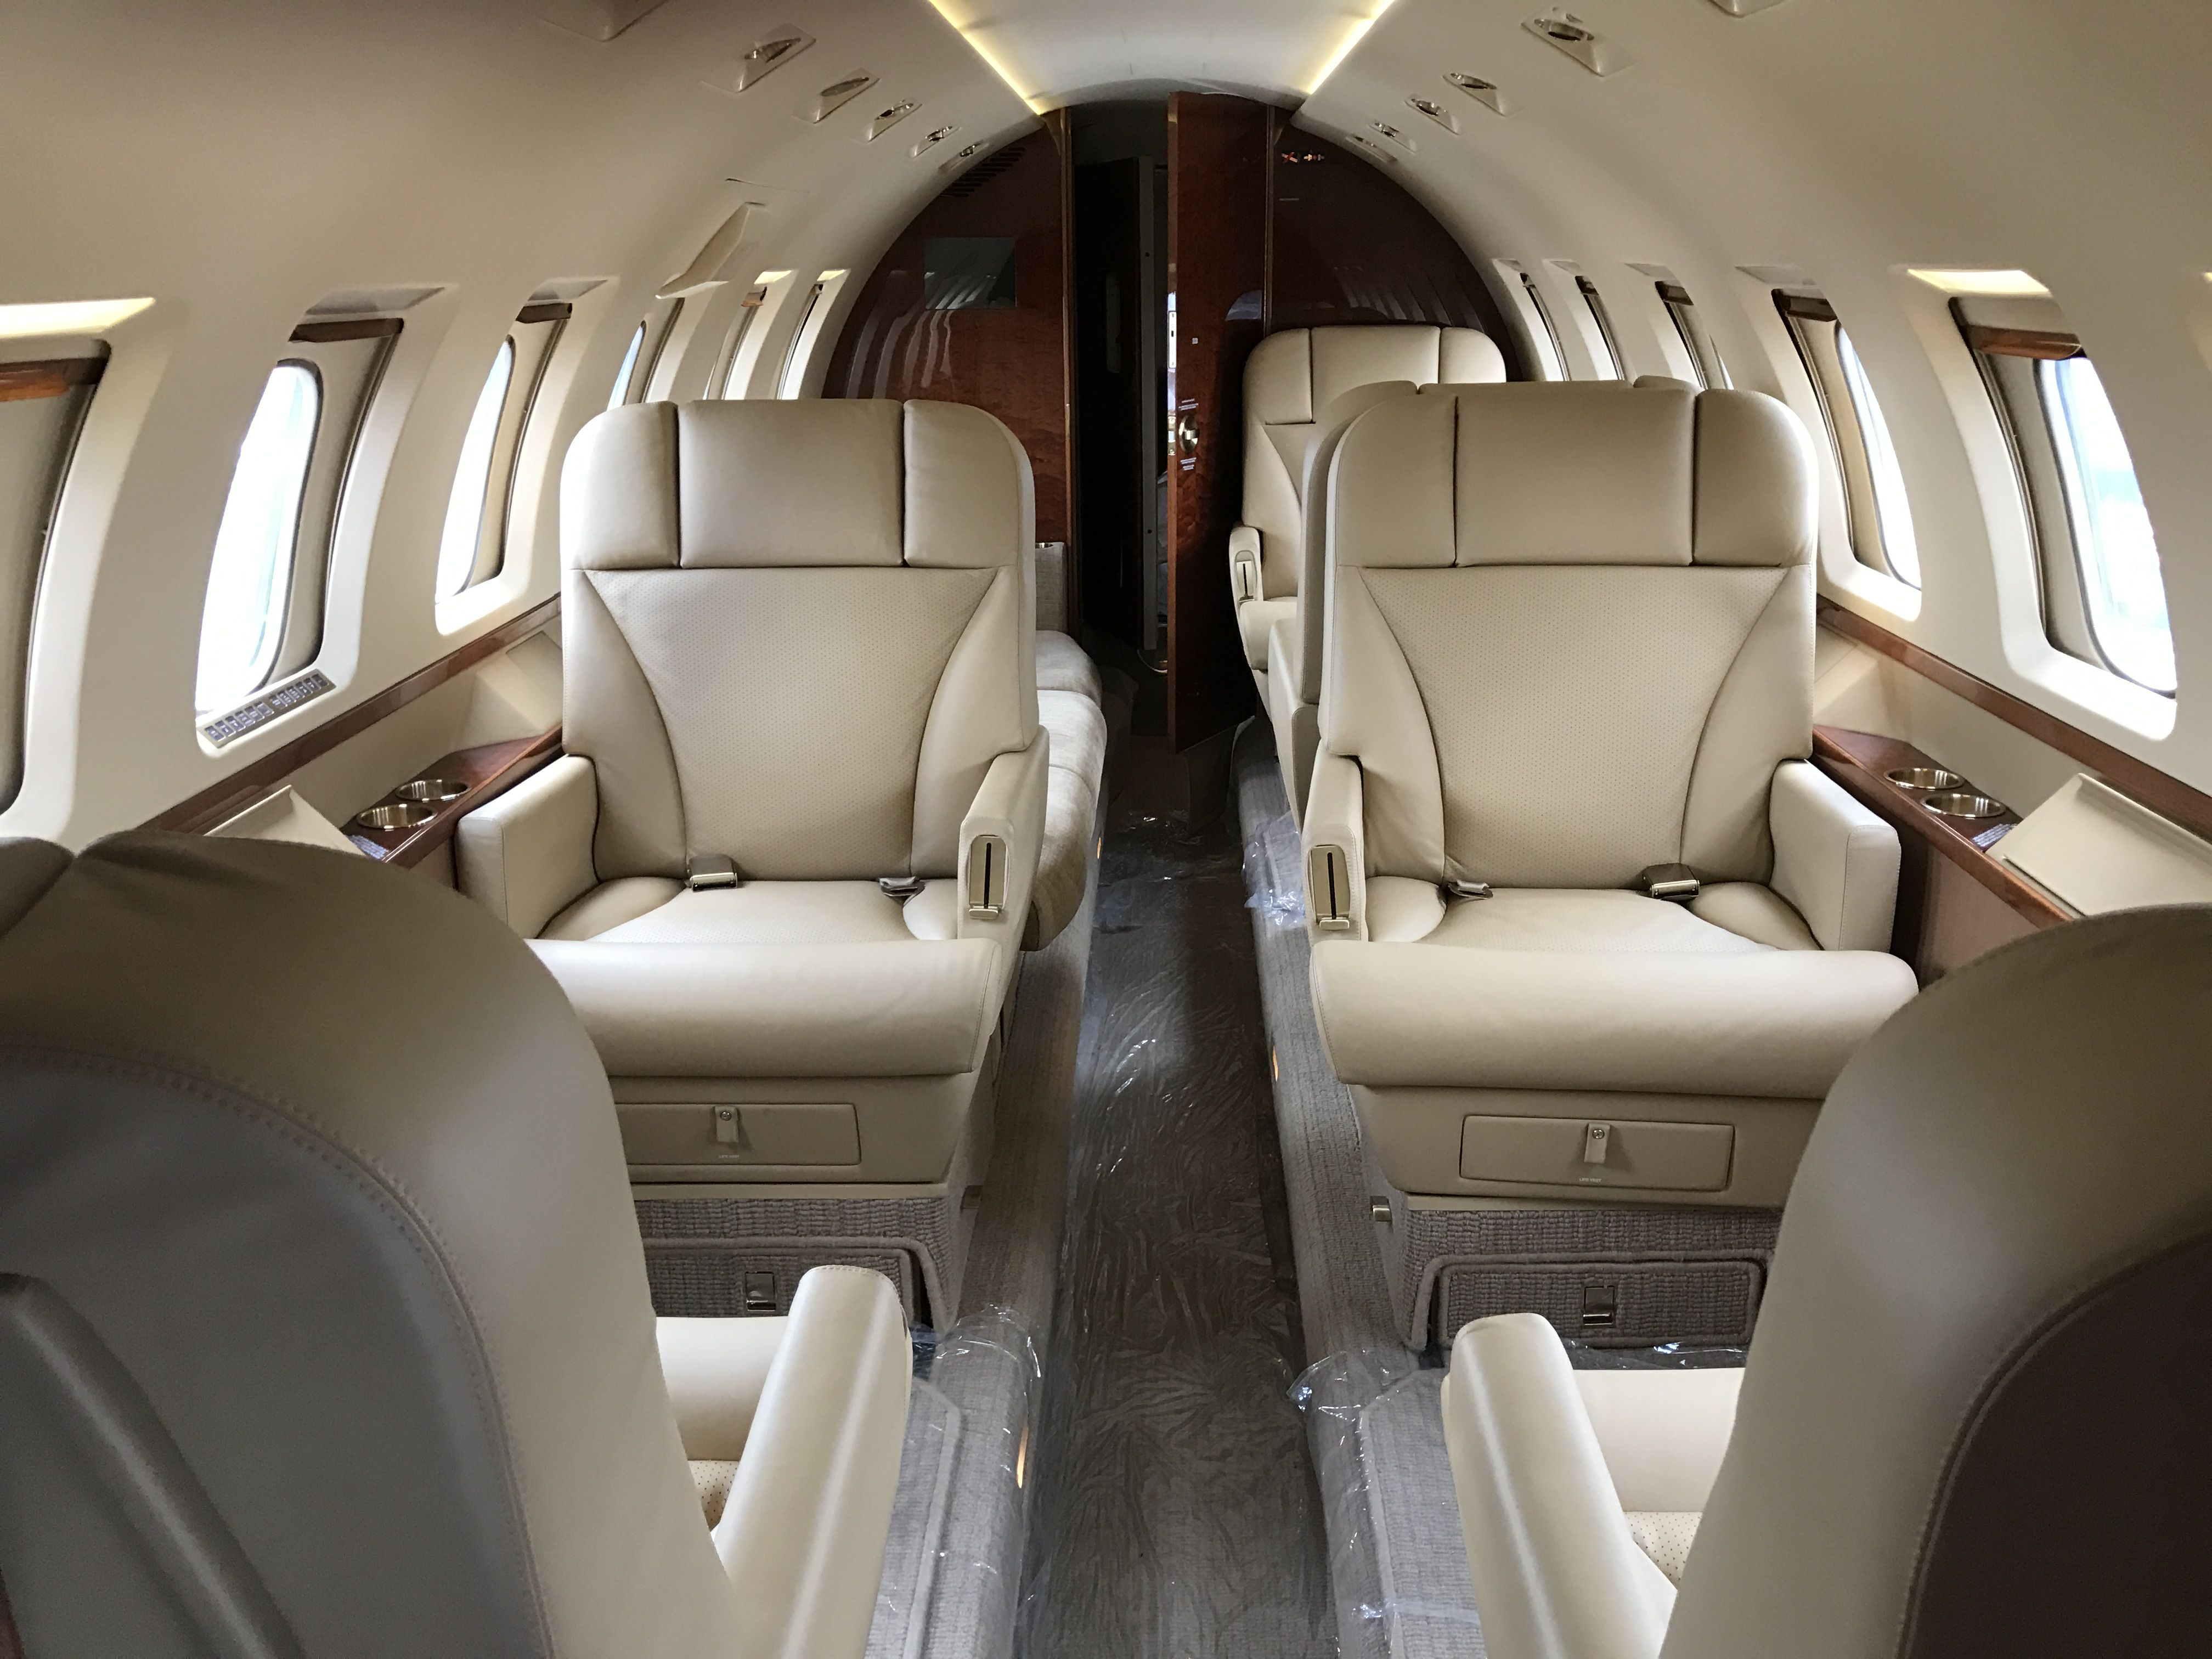 Pin by West Palm Jets on Business Travel Luxury, Luxury